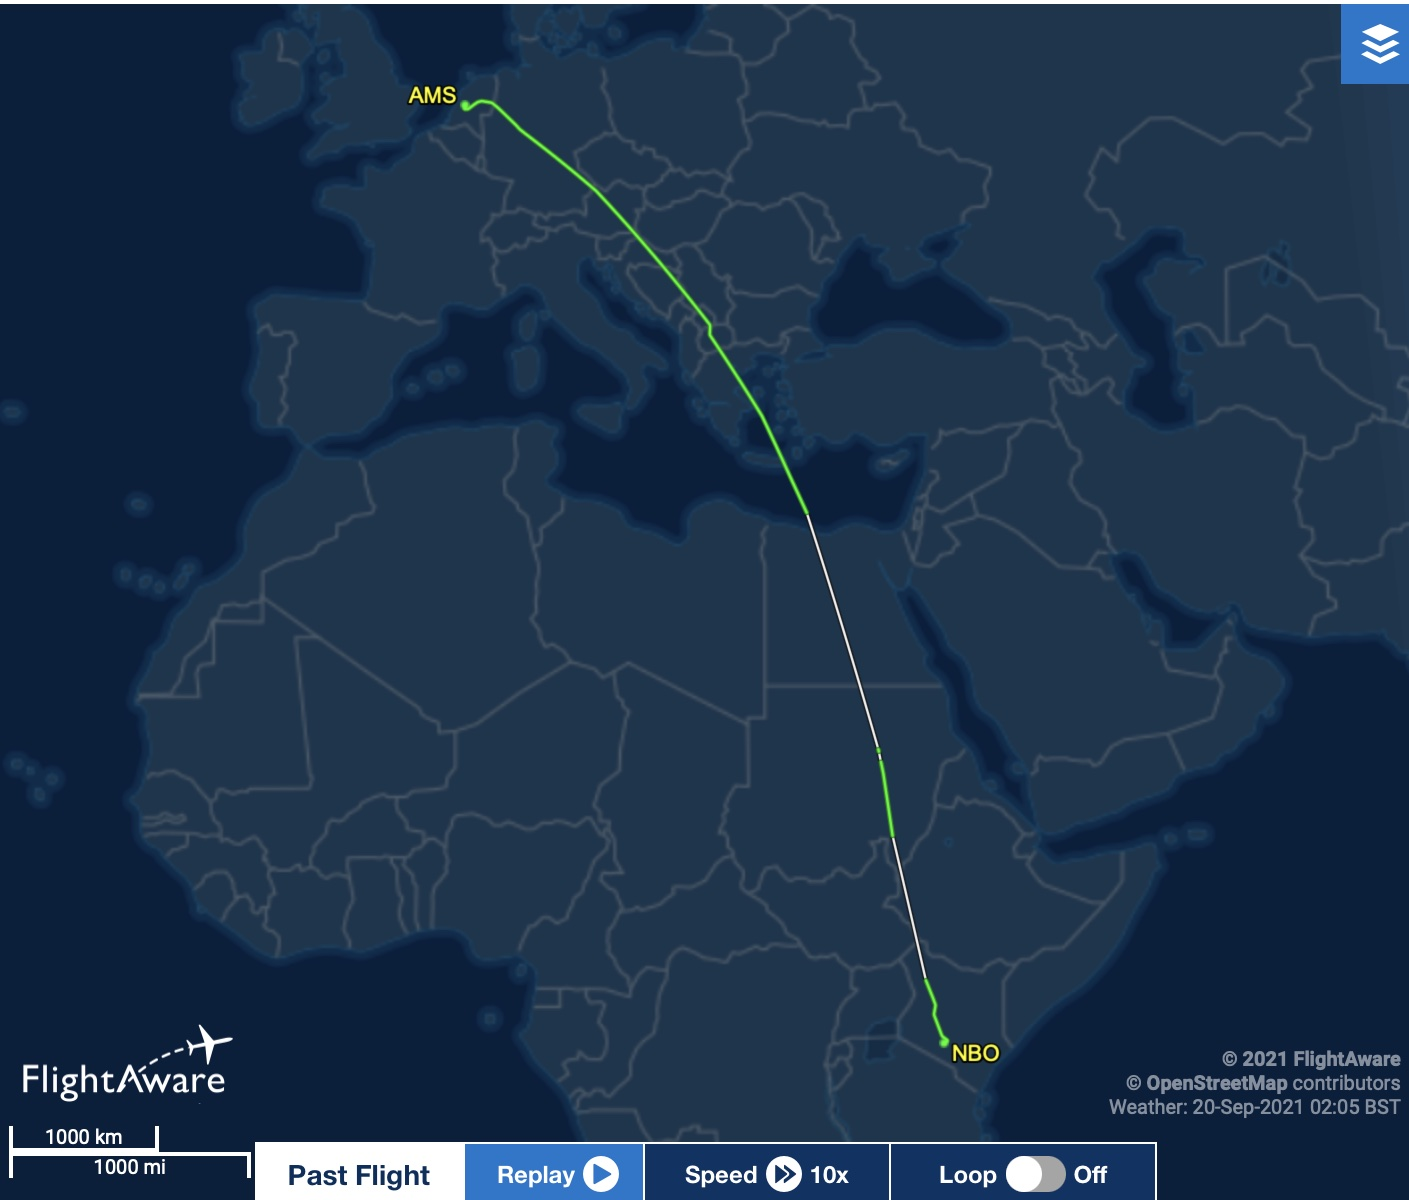 Showing Flight KQ118 travel route